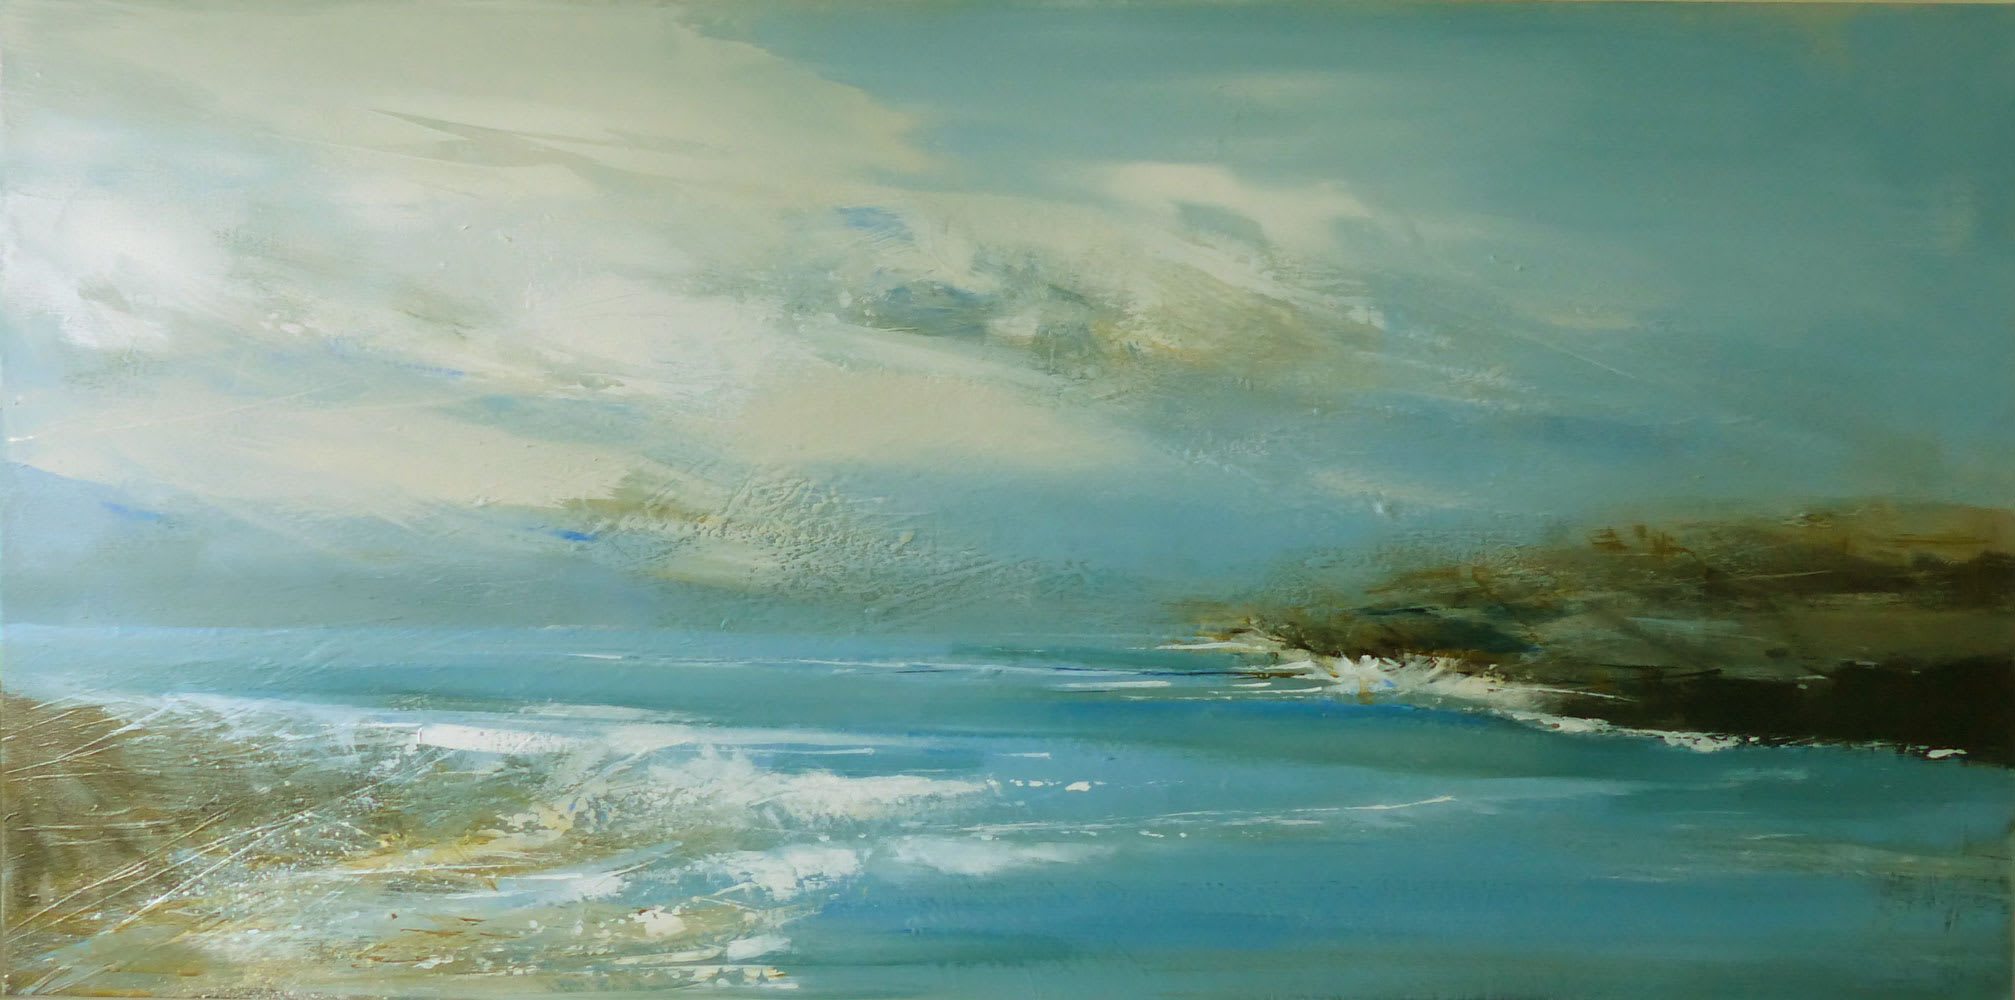 """<span class=""""link fancybox-details-link""""><a href=""""/store/artworks/7009-jenny-hirst-bright-day-2020/"""">View Detail Page</a></span><div class=""""artist""""><strong>Jenny Hirst</strong></div> b. 1954 <div class=""""title""""><em>Bright Day</em>, 2020</div> <div class=""""medium"""">acrylic on canvas (framed)</div> <div class=""""dimensions"""">45cm x 90cm </div><div class=""""price"""">£1,250.00</div><div class=""""copyright_line"""">Own Art £125 x 10 months. 0% finance</div>"""